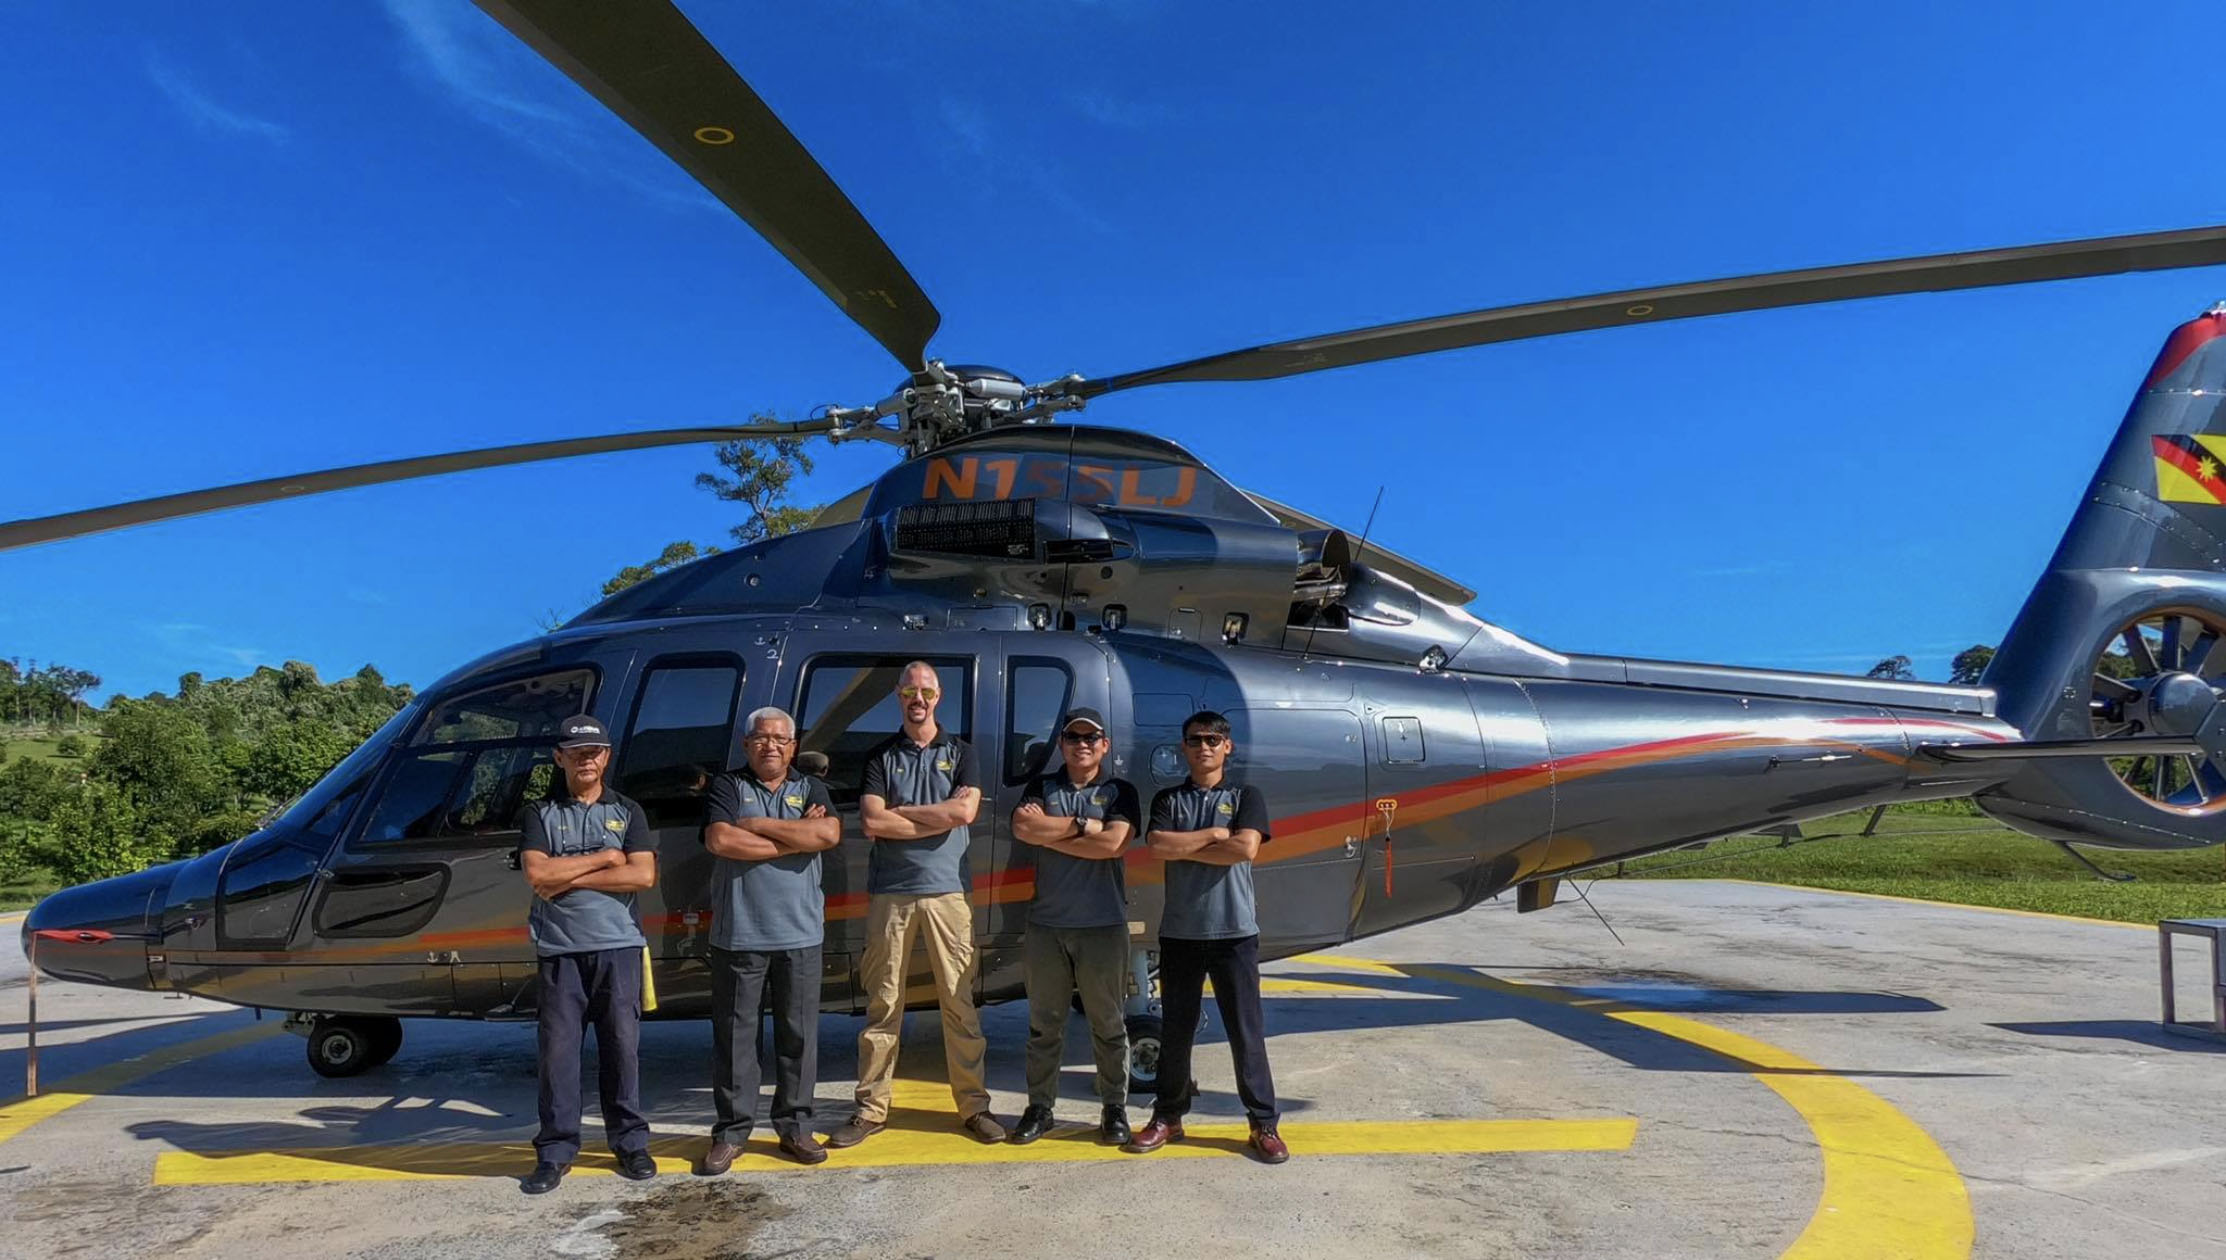 Group of Precision Aviation students standing in front of helicopter